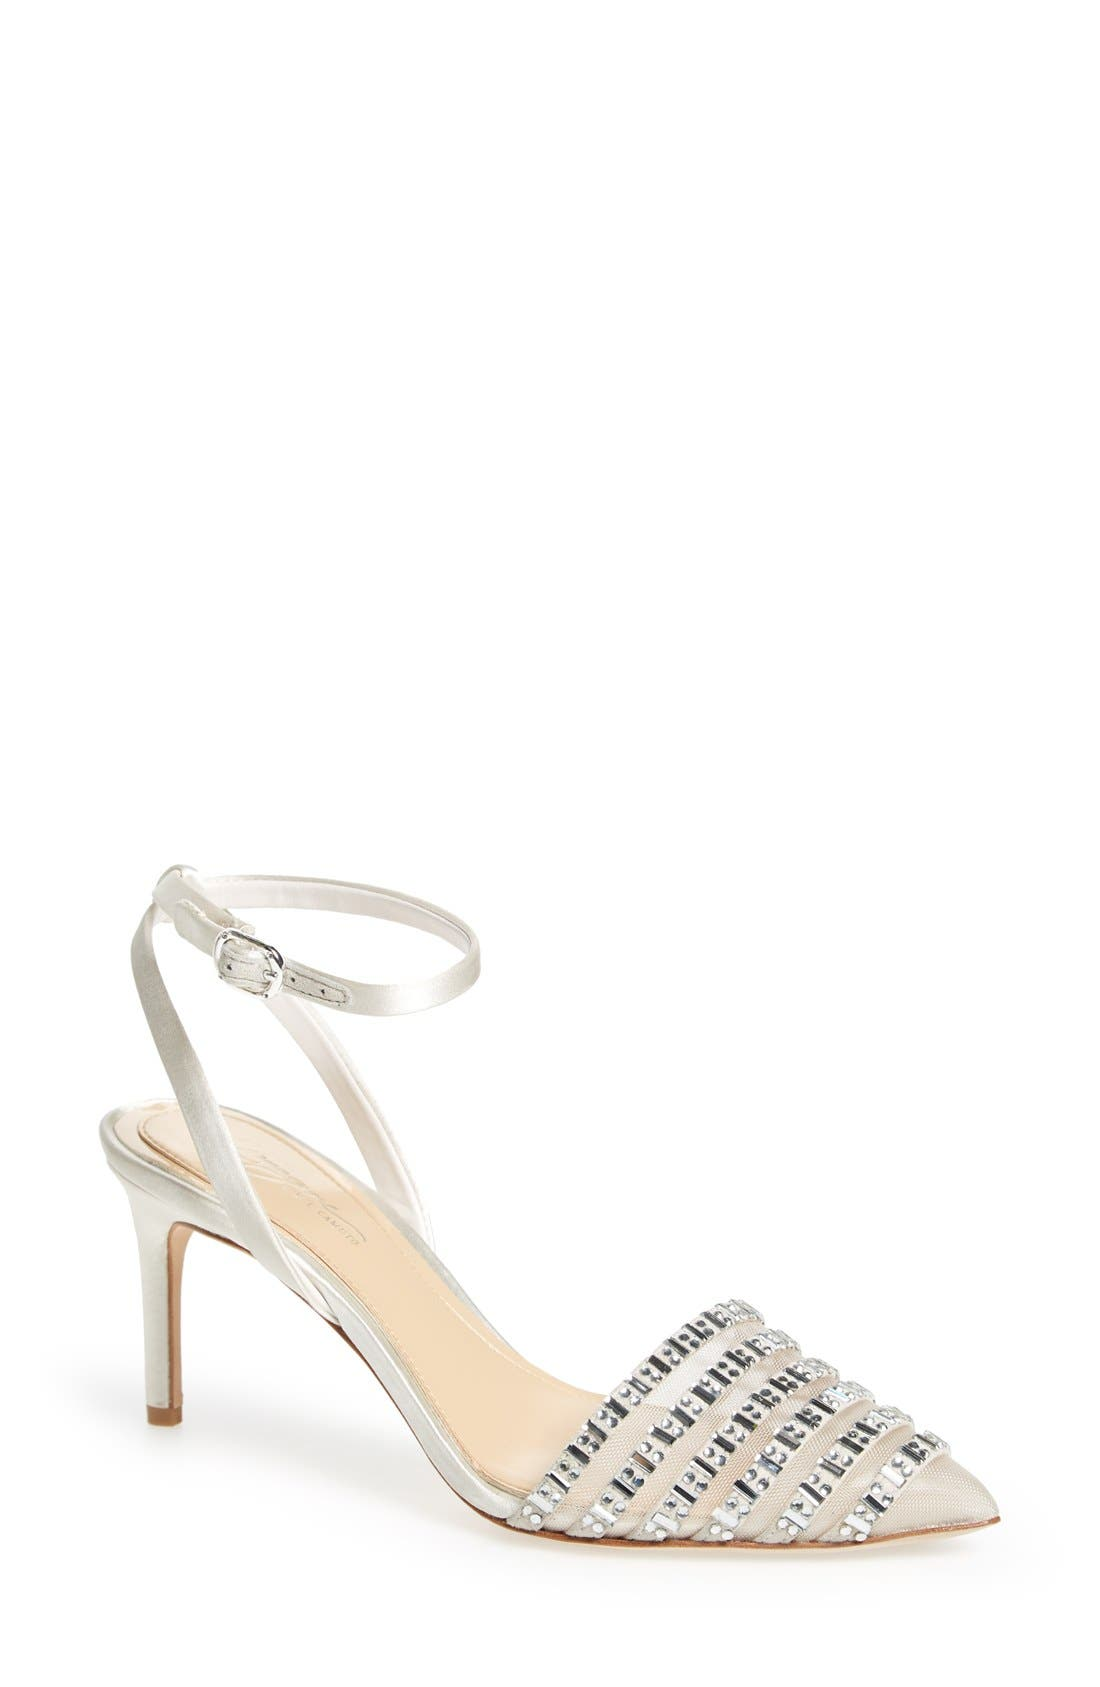 'Michael' Sandal,                             Main thumbnail 1, color,                             Ivory Satin